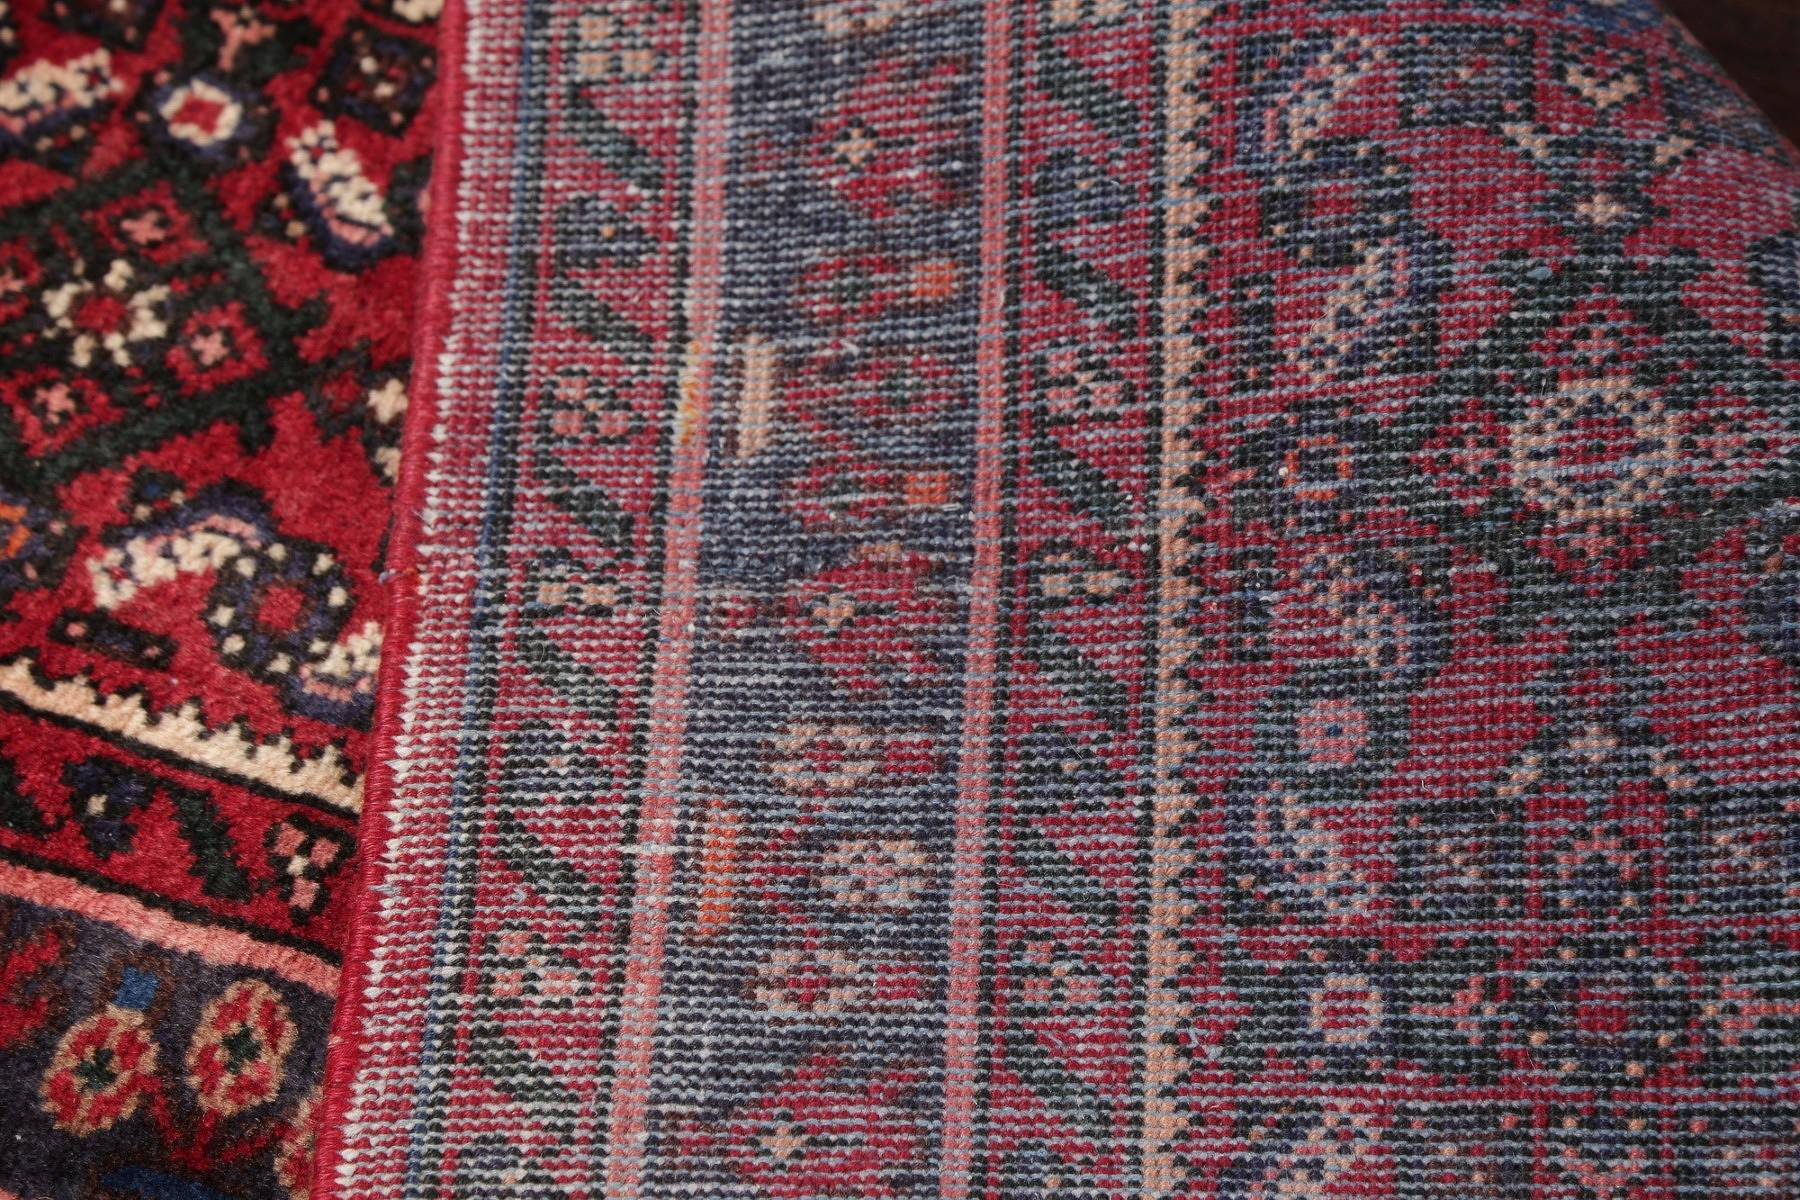 All-Over Geometric Red Hamedan Persian Hand-Knotted Runner Rug Wool 3x7